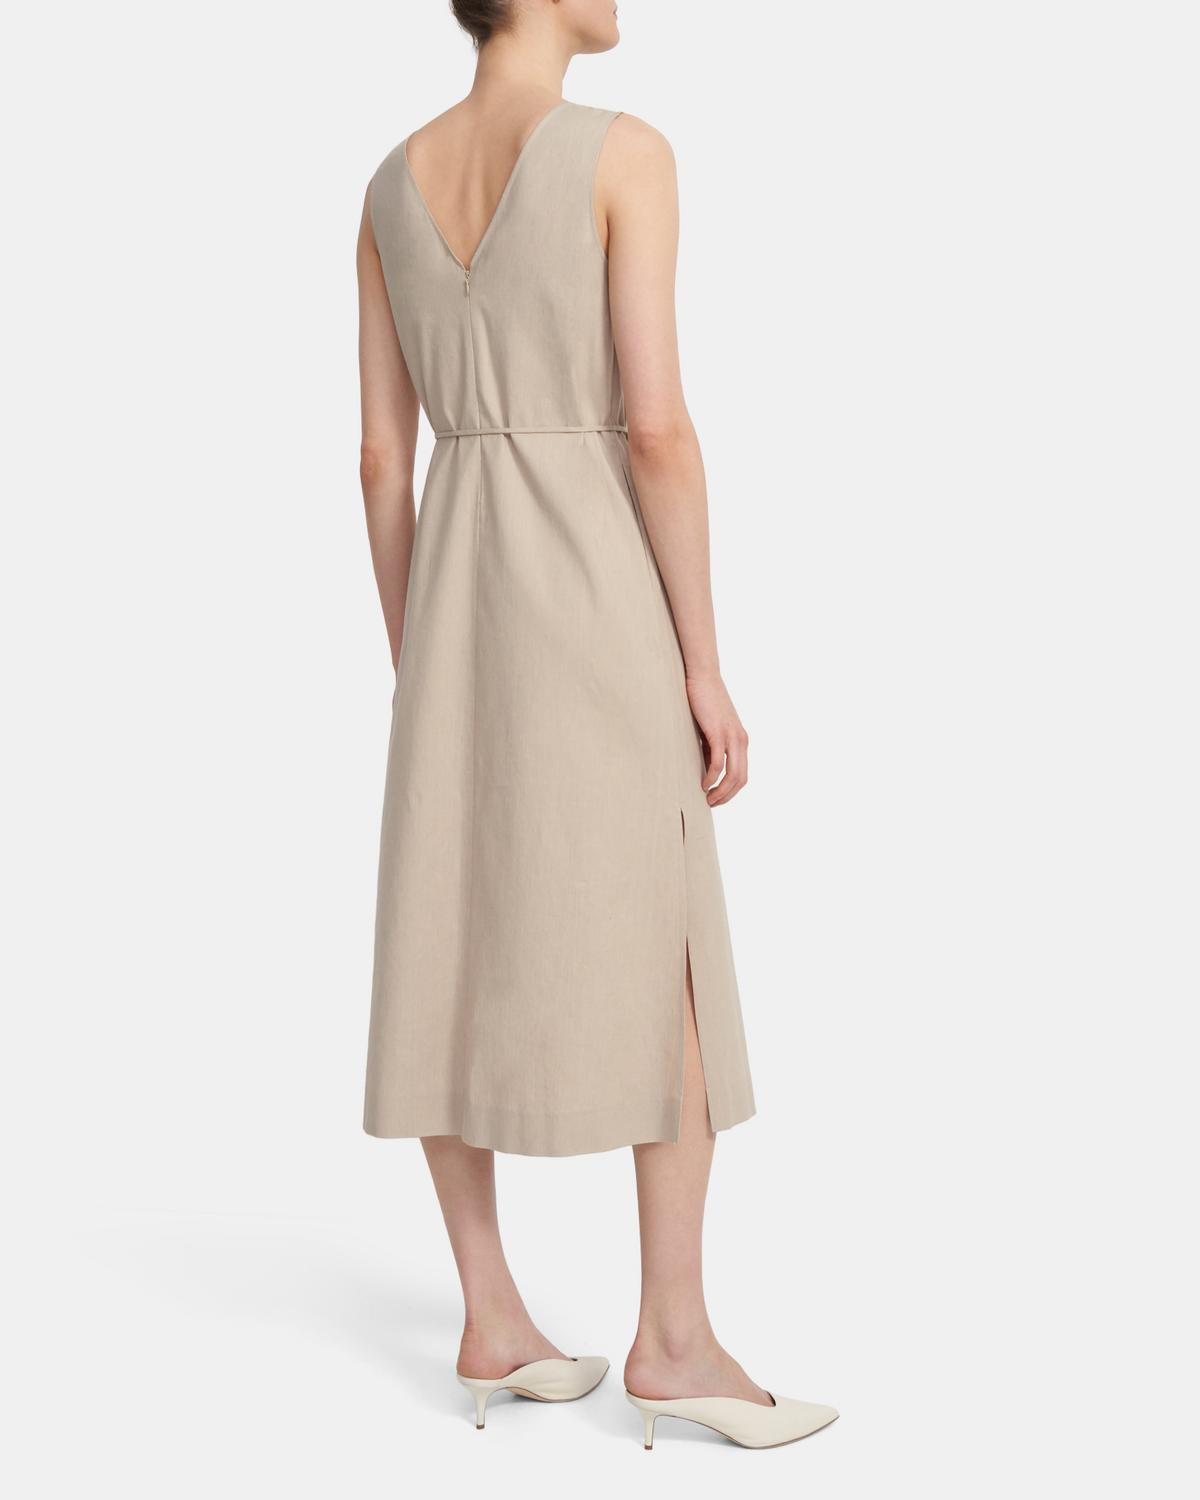 Deep V Midi Dress in Linen Blend